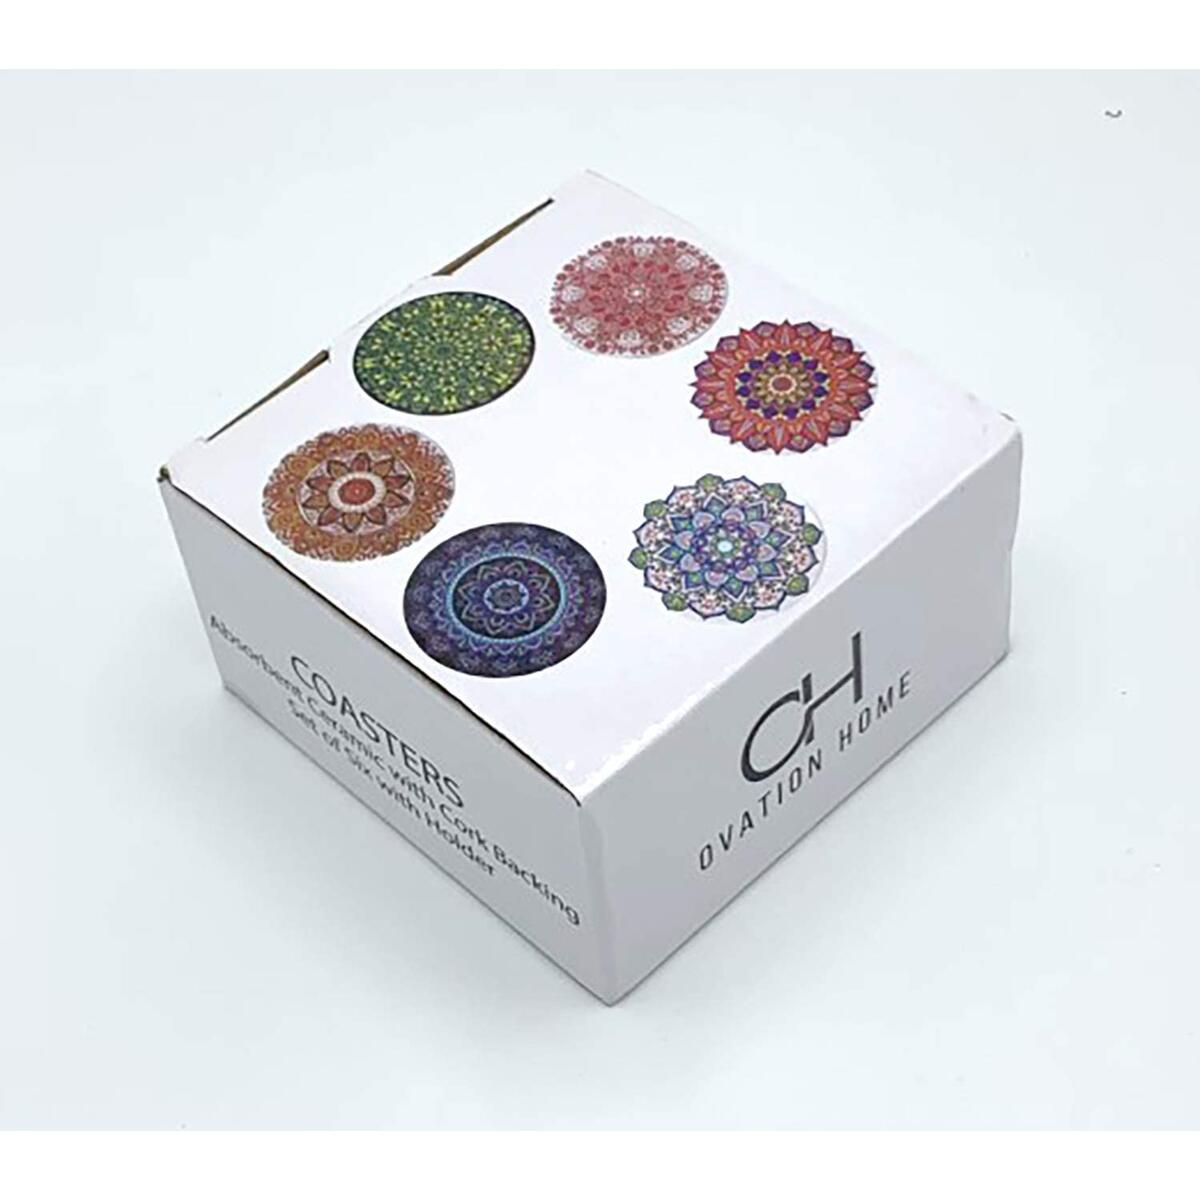 Ceramic Coasters for Drinks, 6 Colorful Designs with Premium Black Holder, Absorbent Ceramic with Cork Backing, 4 inch Diameter.